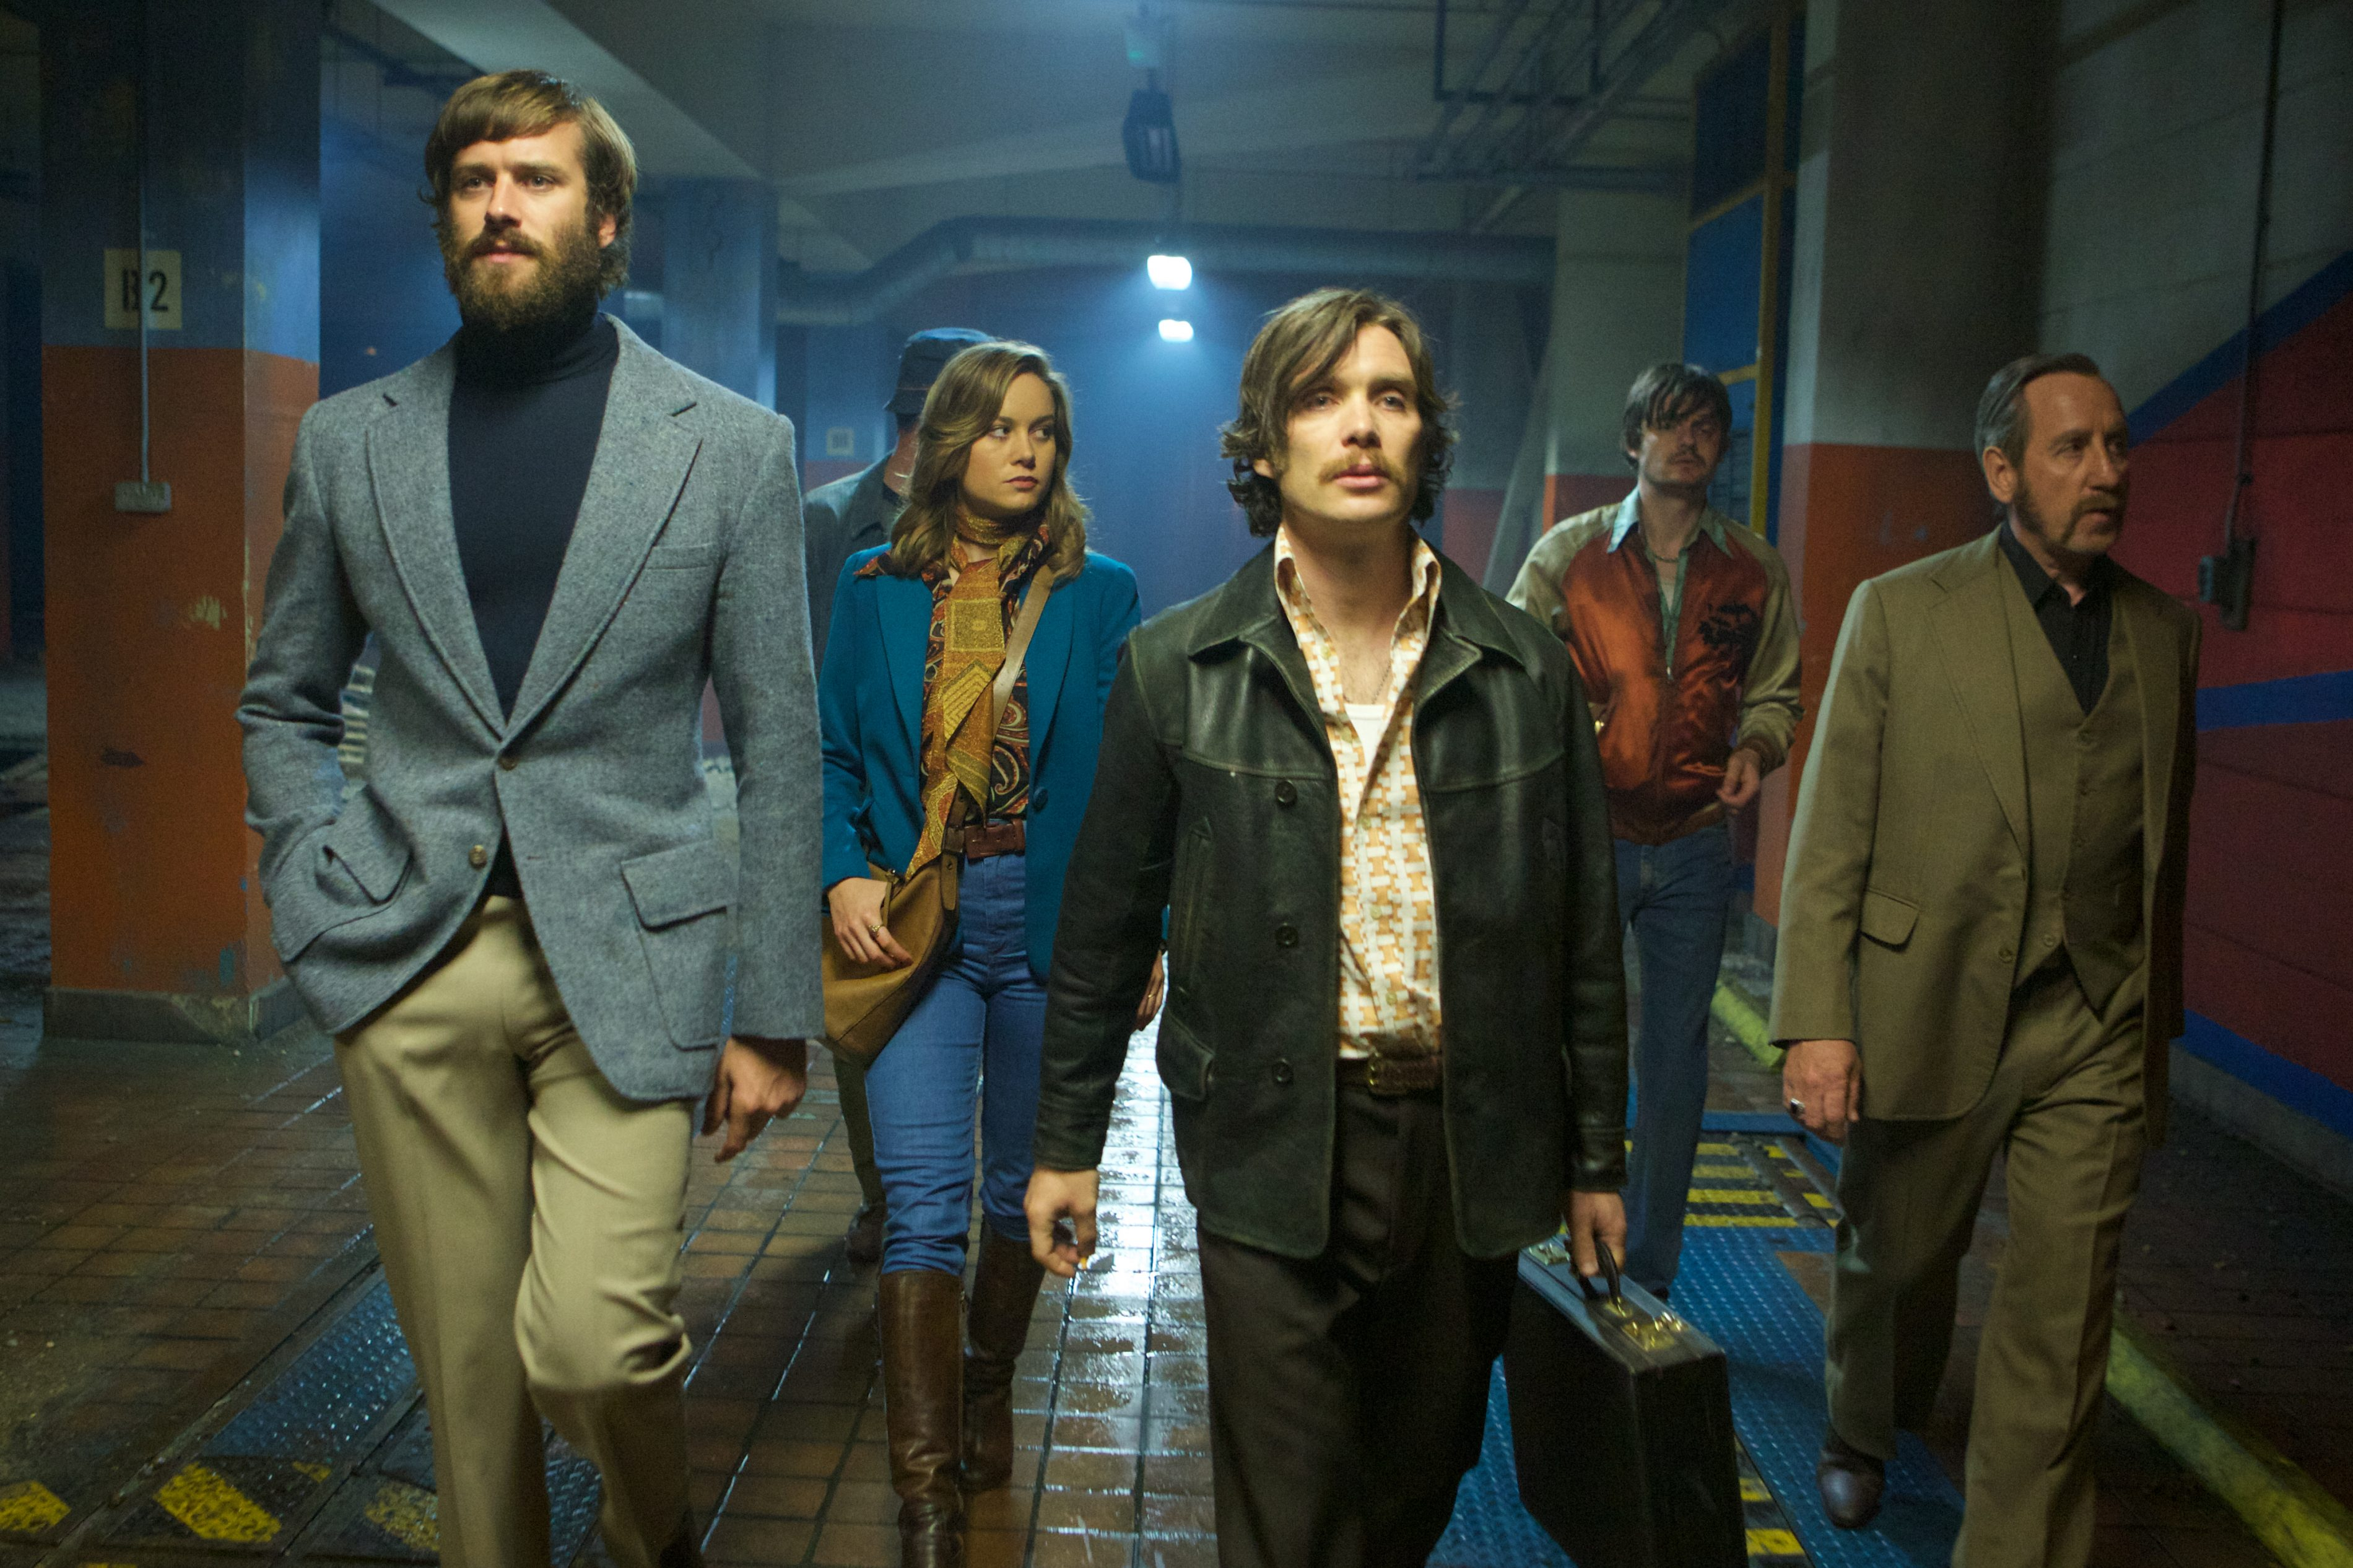 Review: Bullets and One-Liners Rain Down in Ben Wheatley's 'Free Fire'